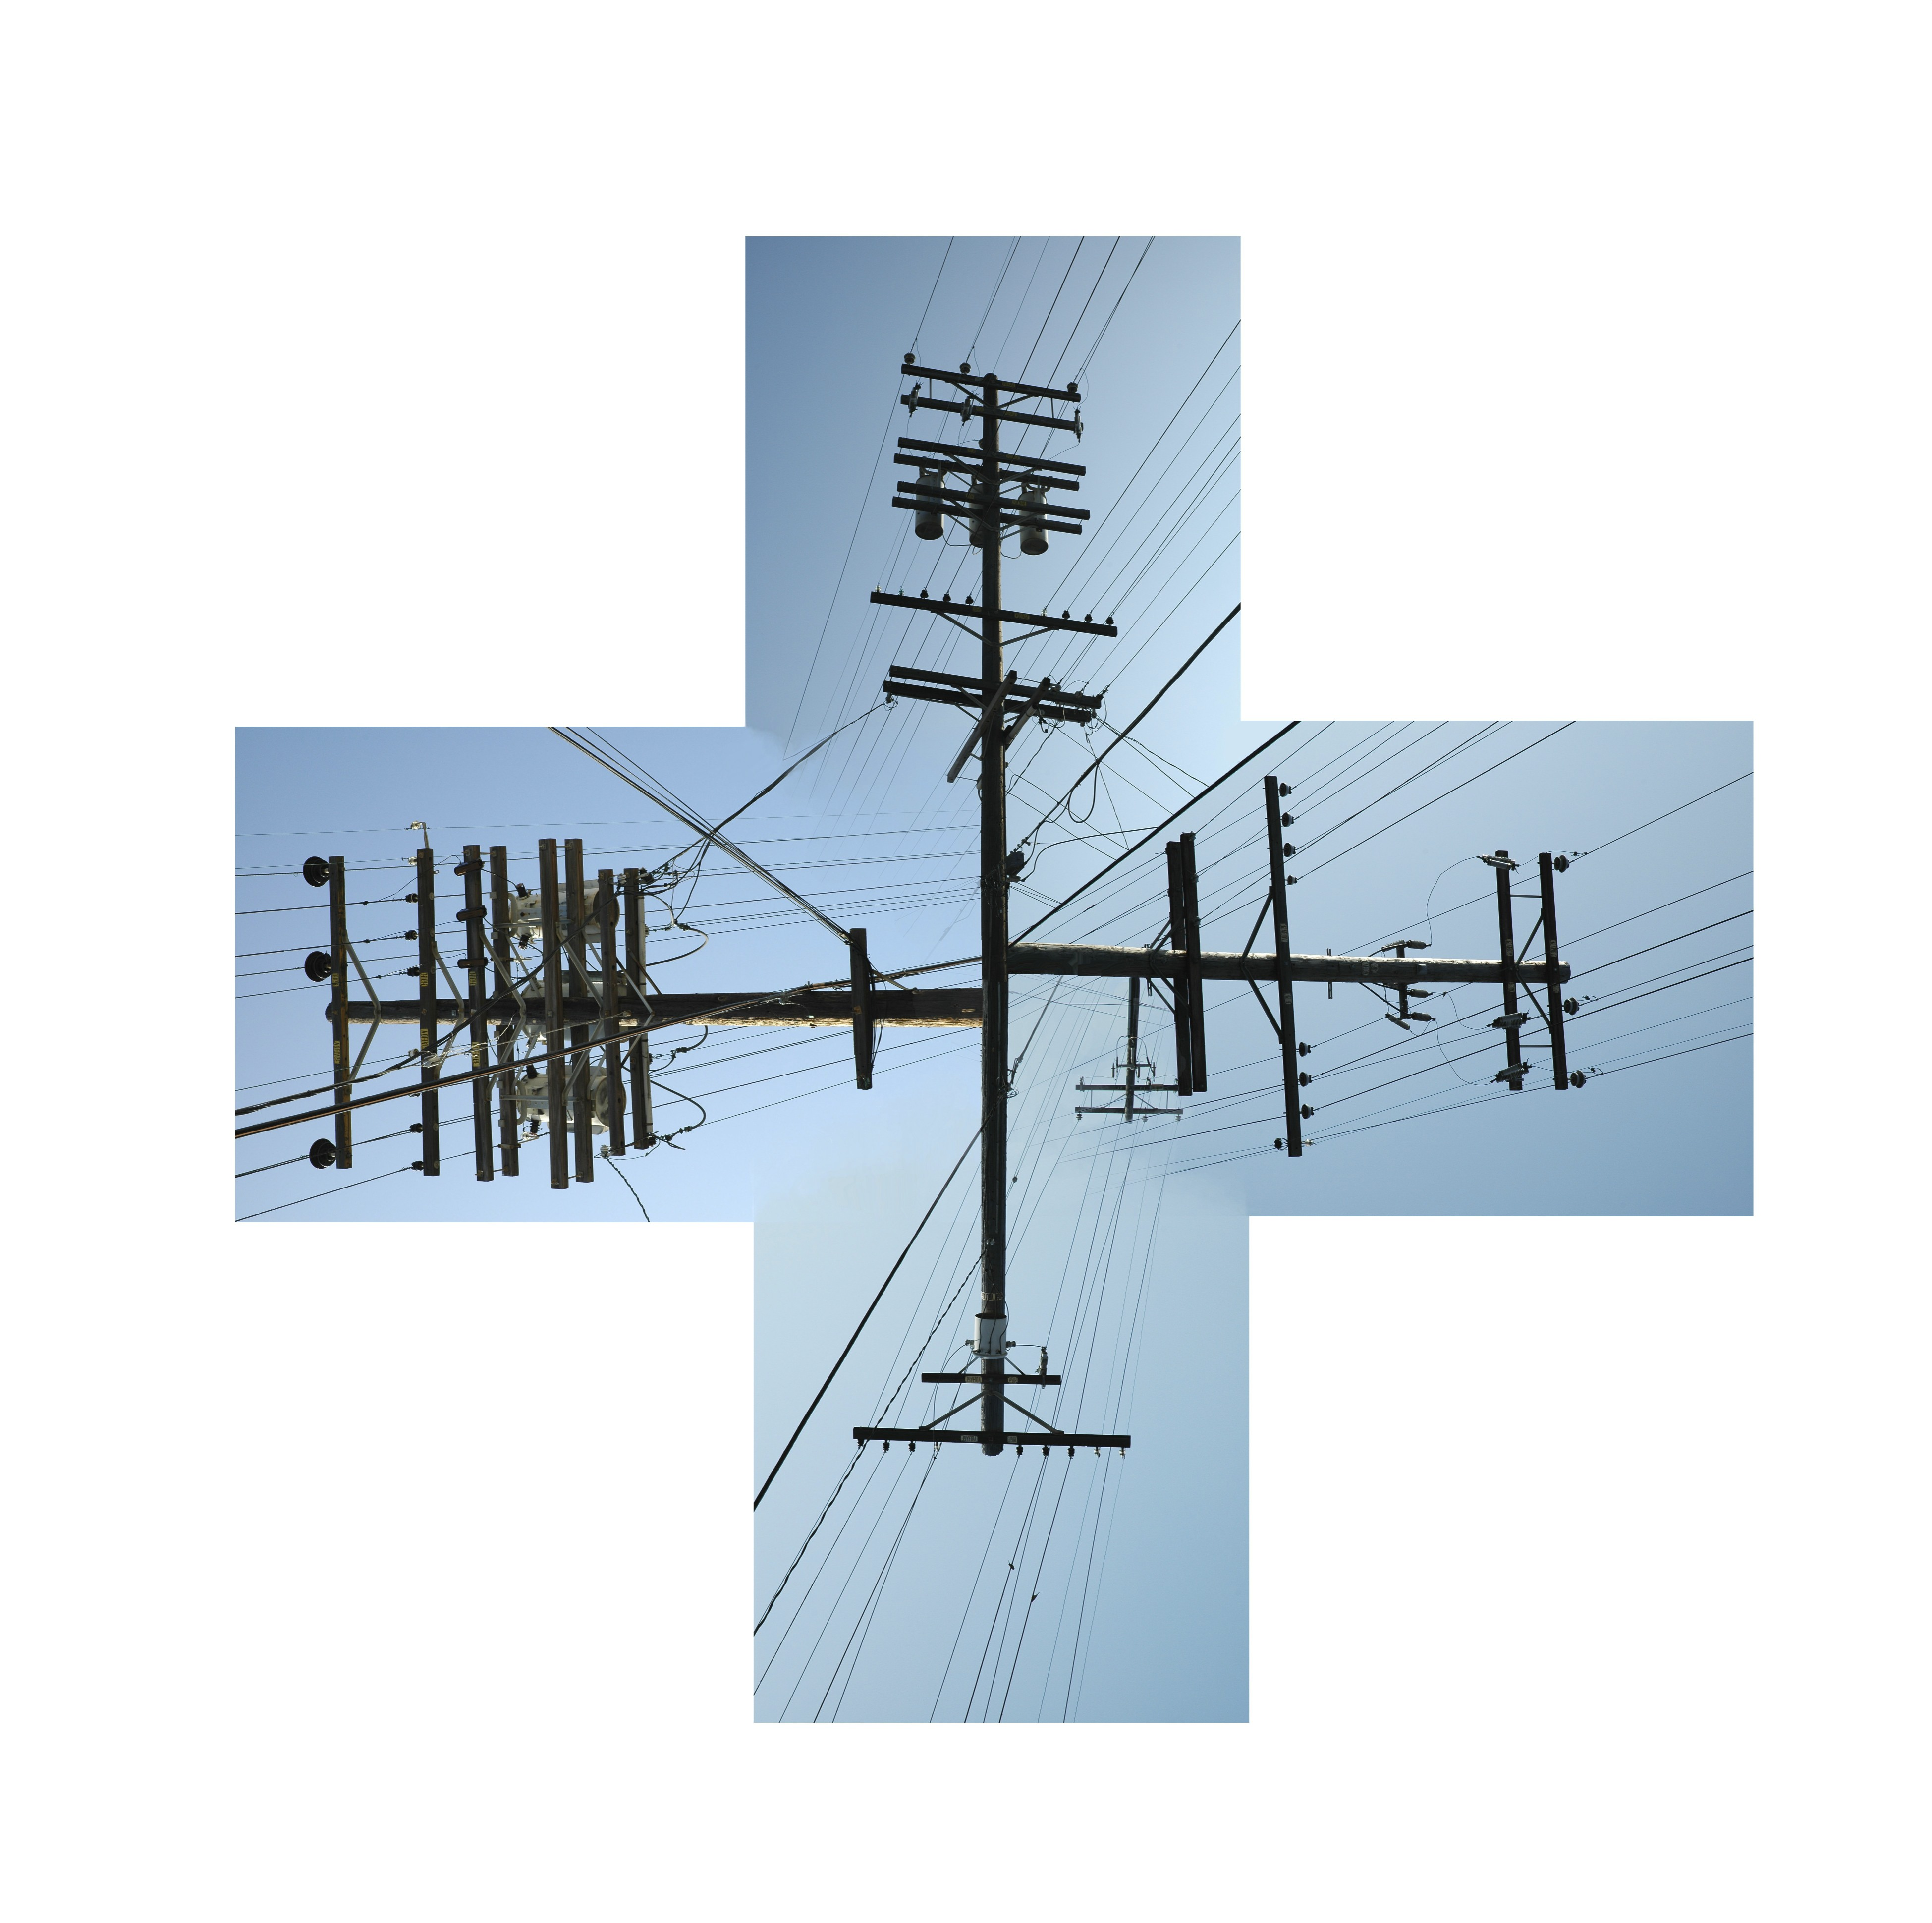 four utility poles in a medical cross